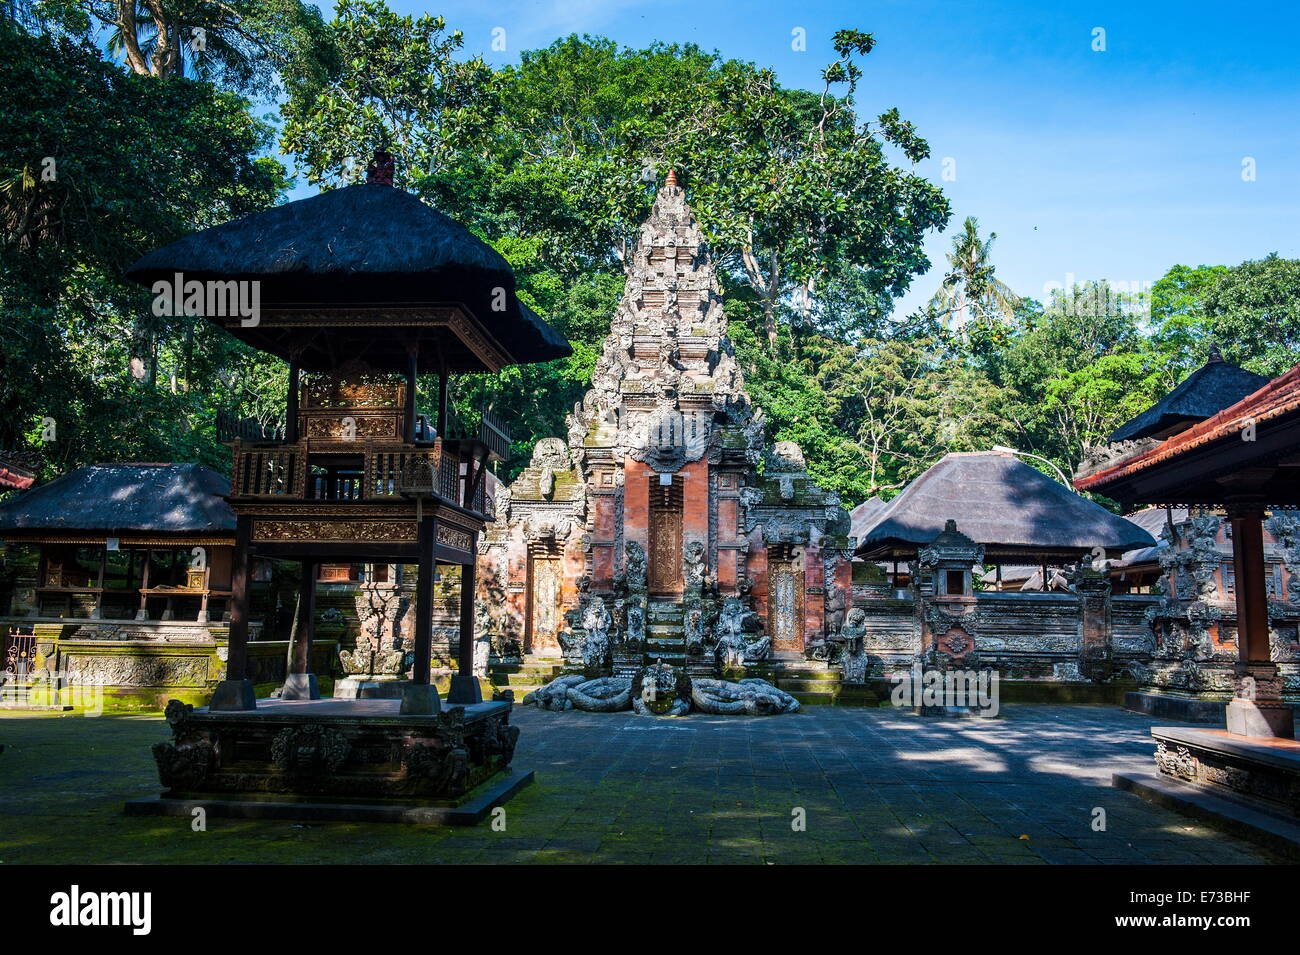 Buddhist temple in the Monkey Forest, Ubud, Bali, Indonesia,Southeast Asia, Asia - Stock Image